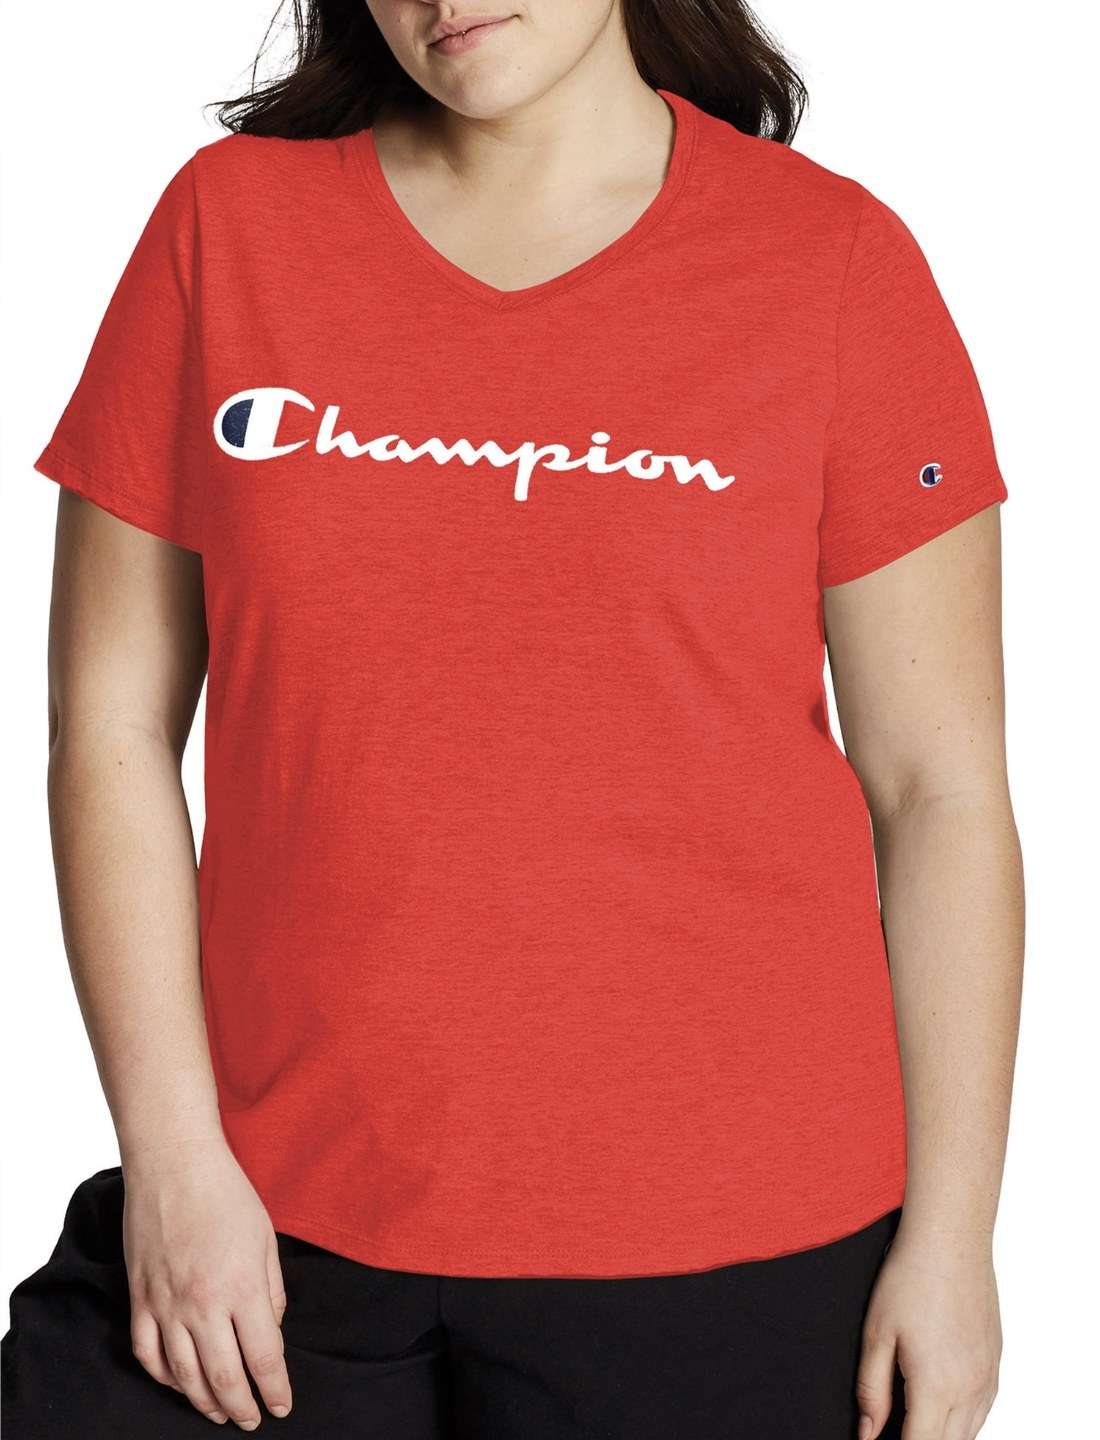 Model in the red Champion T-shirt